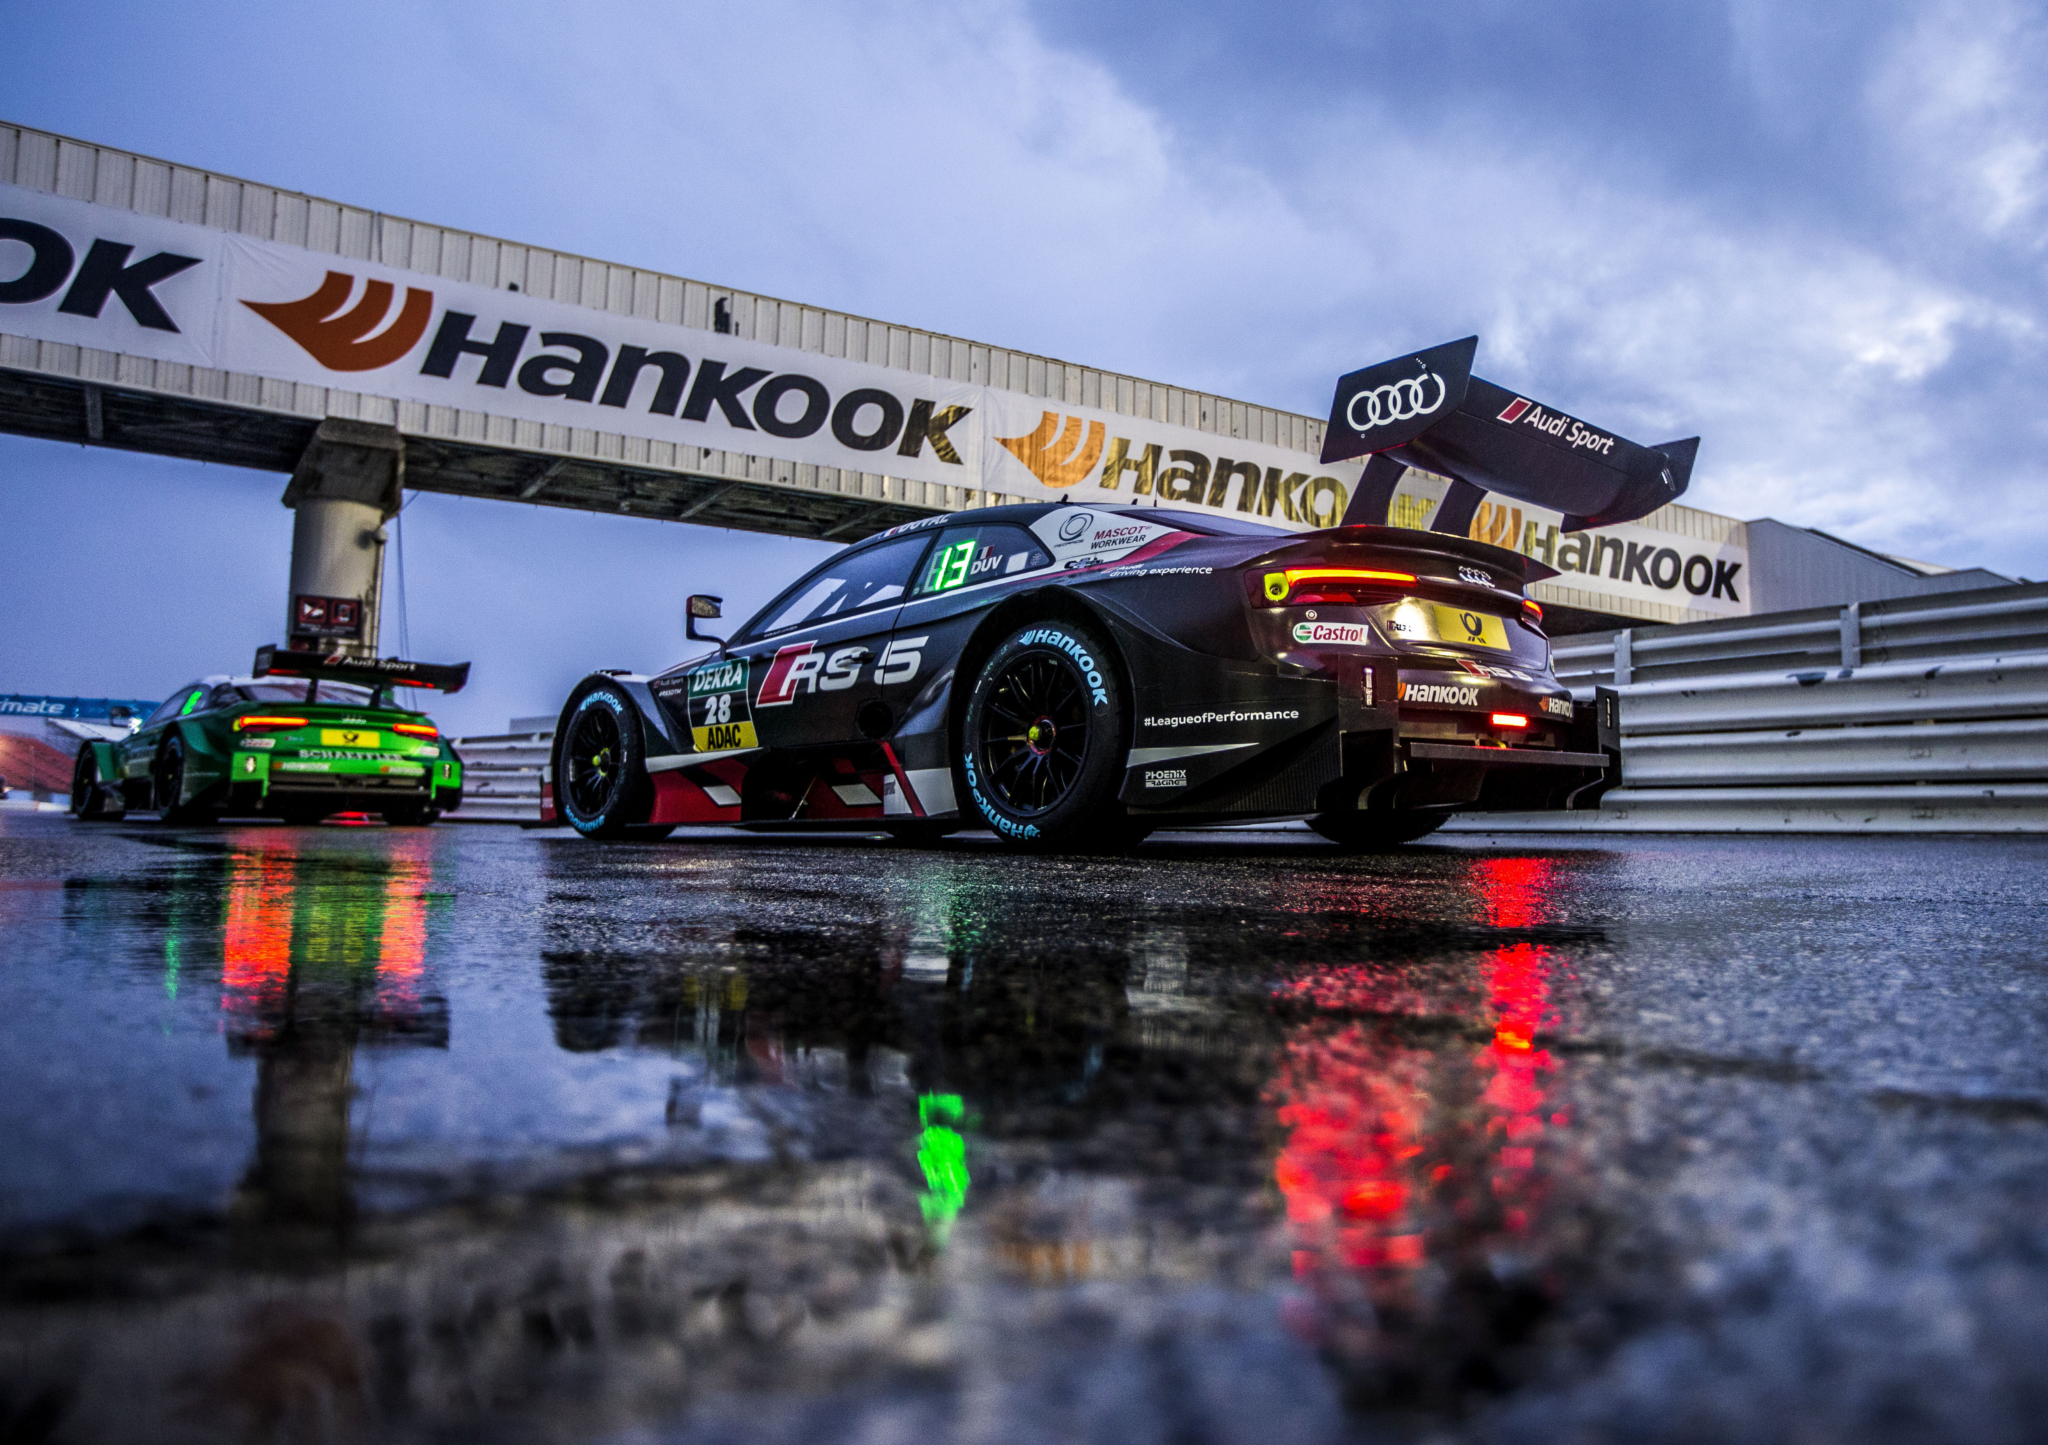 Hankook celebrates 10 years with the DTM